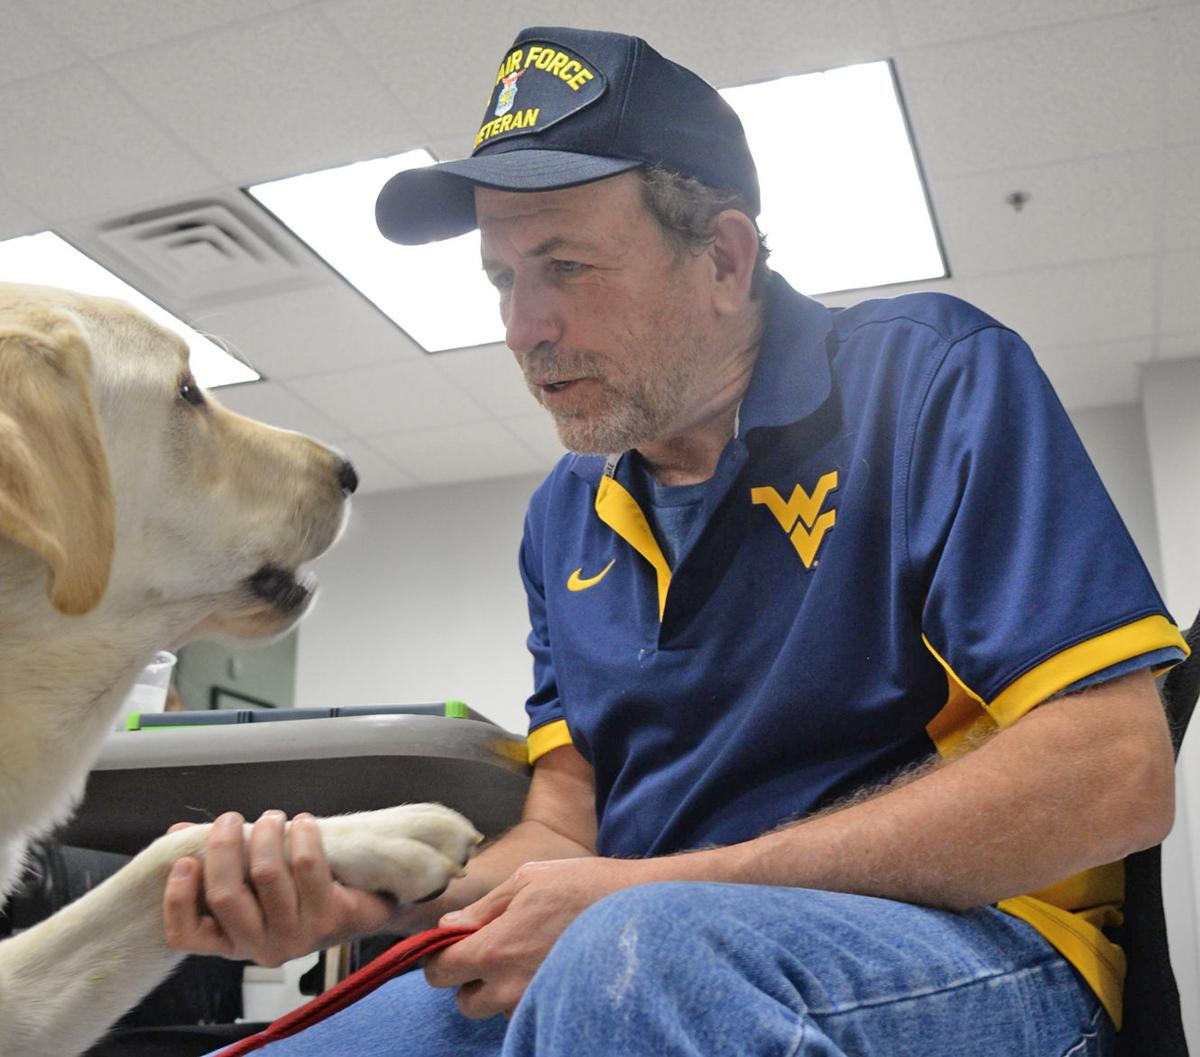 Service dogs provide needed 'help now' for veterans: Photos